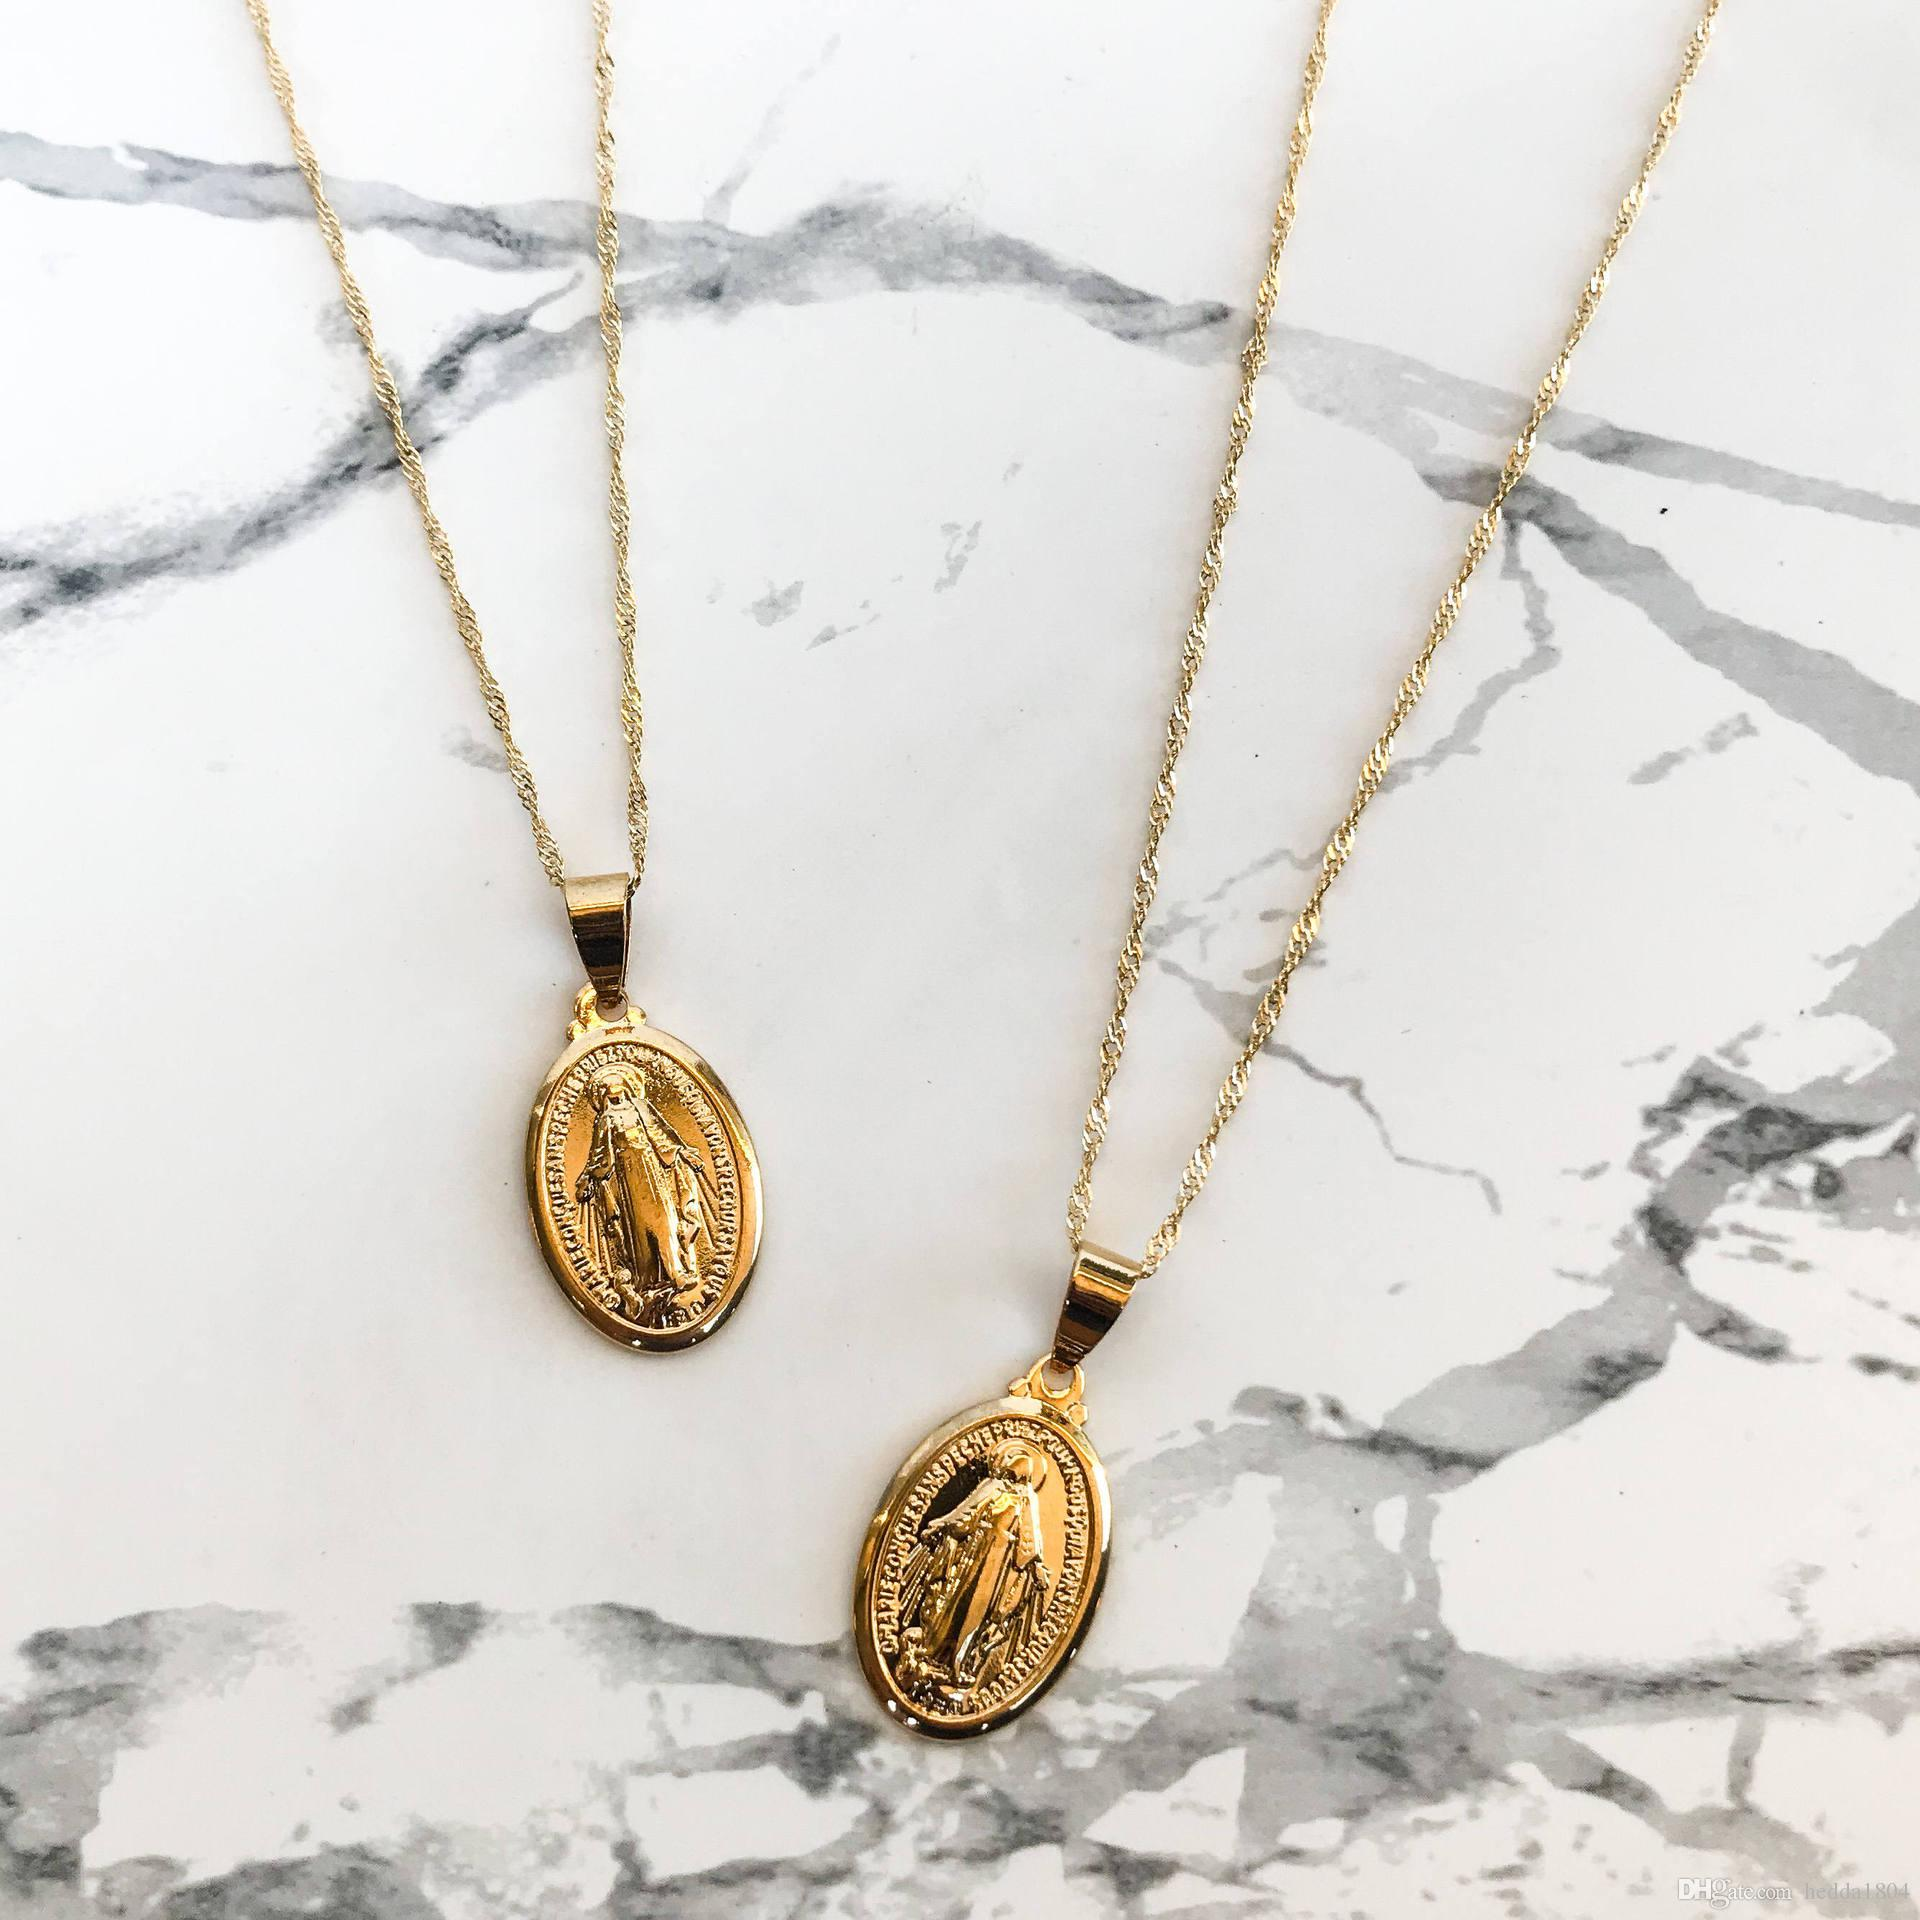 55ccd34cc6513 Hot Sale Virgin Mary Necklace Gold Plated Dainty Gold Medallion Necklace  Mother Mary Pendant Religious Catholic Gift Jewelry